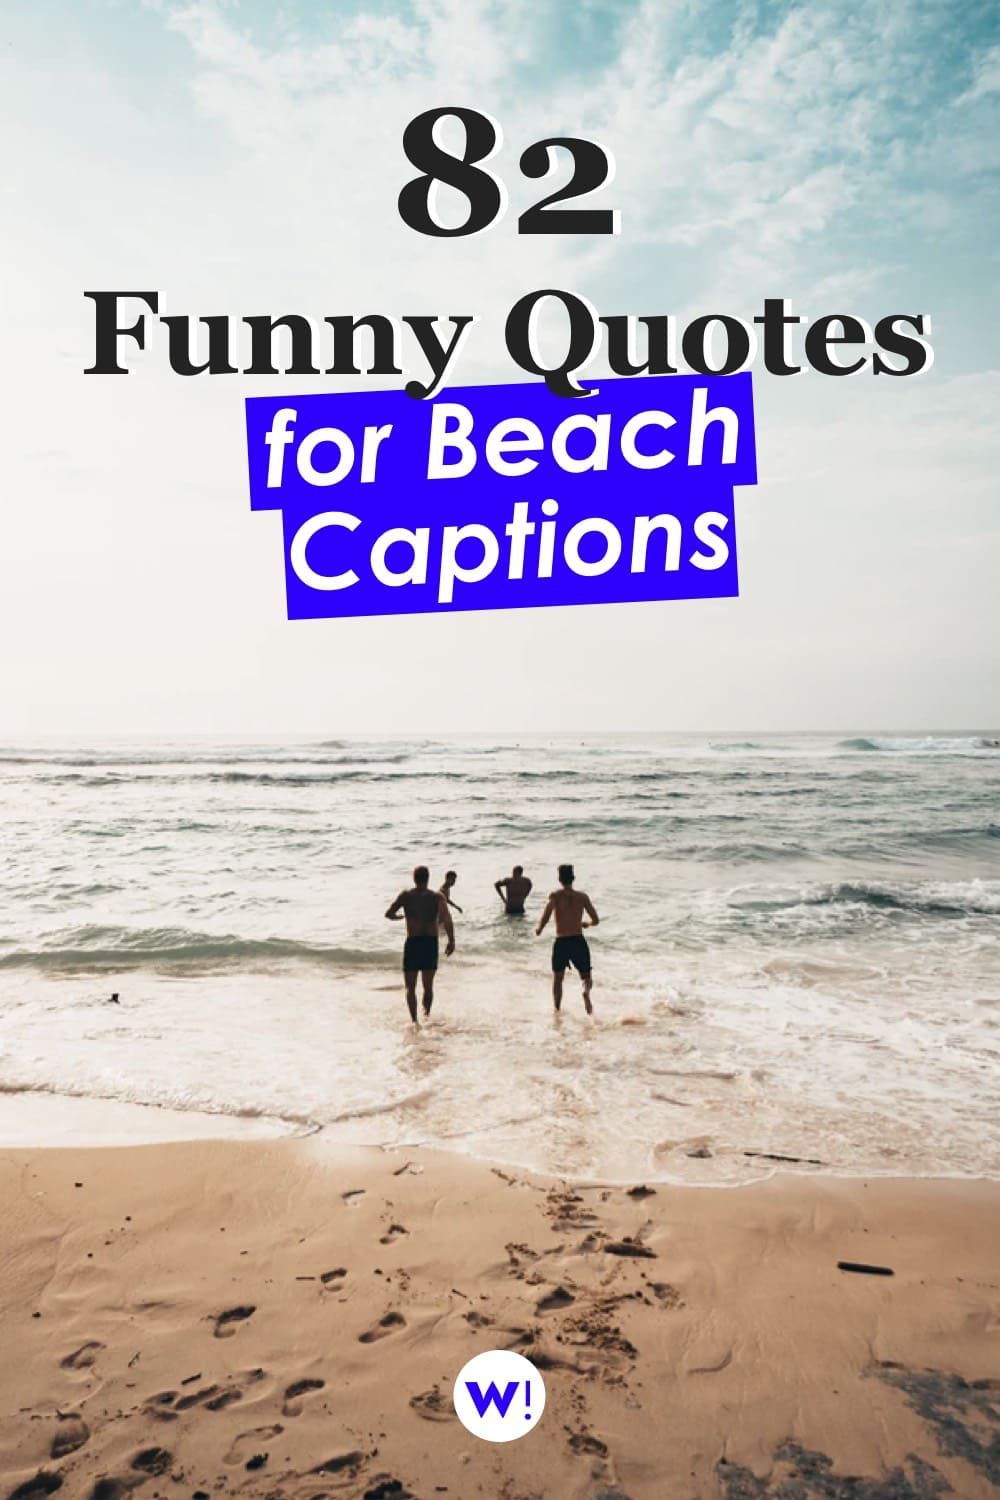 Trying to find some funny beach captions for Instagram? Say no to boring. Bye bye lame serious captions, hello funny beach quotes! Find exactly what you need with these 82 beach Instagram captions, funny quotes & puns. beach quotes funny |beach quotes and sayings funny |sea quotes beach funny |funny beach captions for instagram |funny sea captions |beach quotes and sayings |beach quotes instagram caption